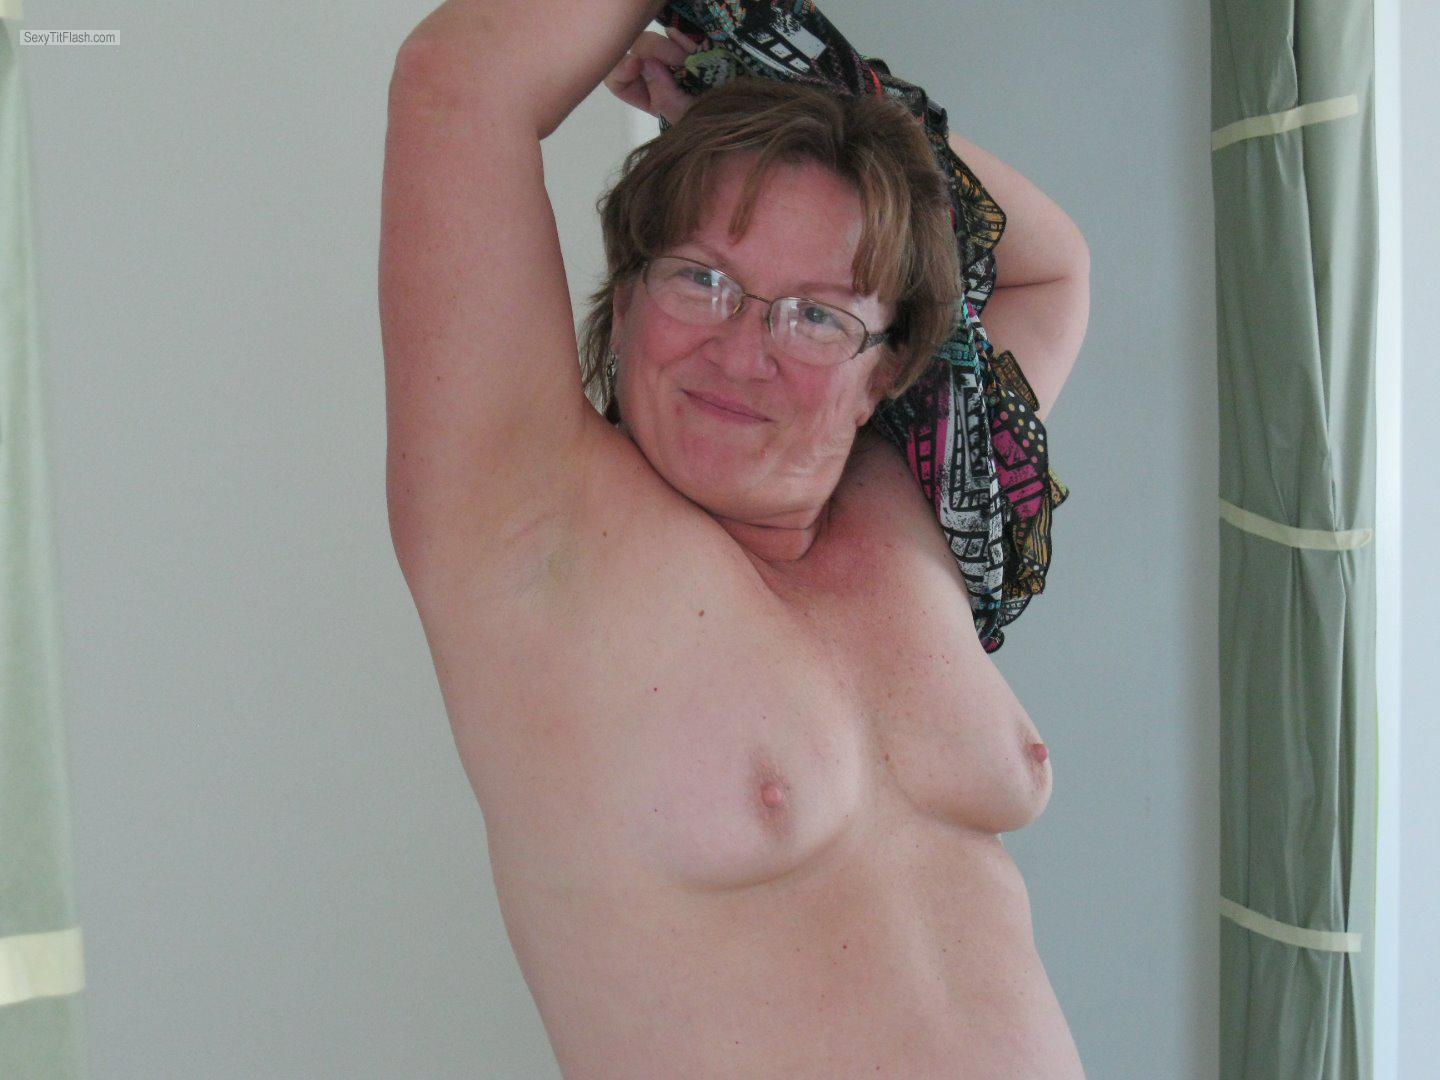 Tit Flash: My Small Tits - Topless Karenkri from United States